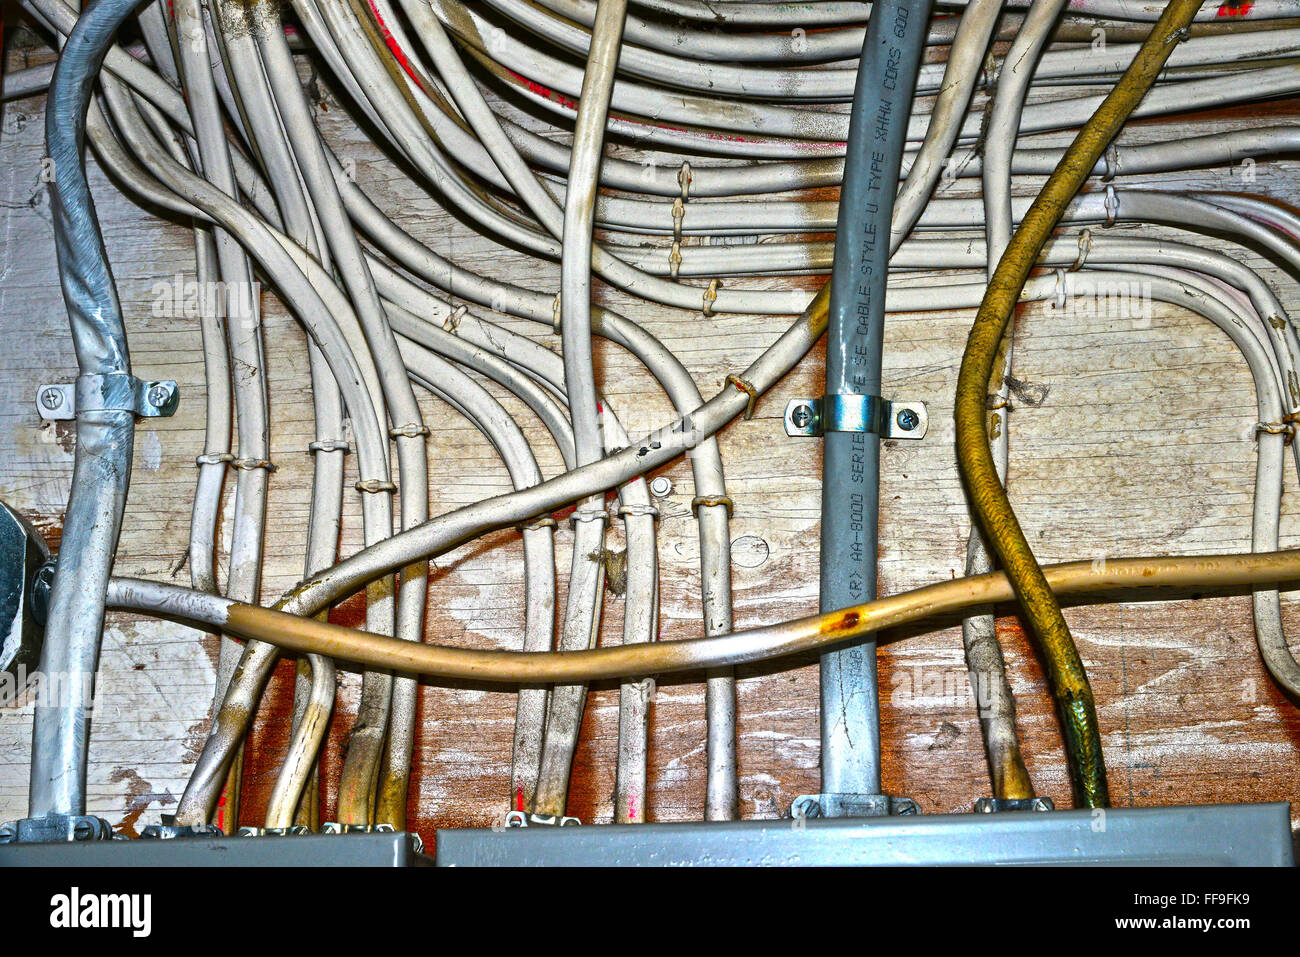 Wiring Electrical Stock Photos Images Alamy Copper Wire Xhhw And Power Boxes Image